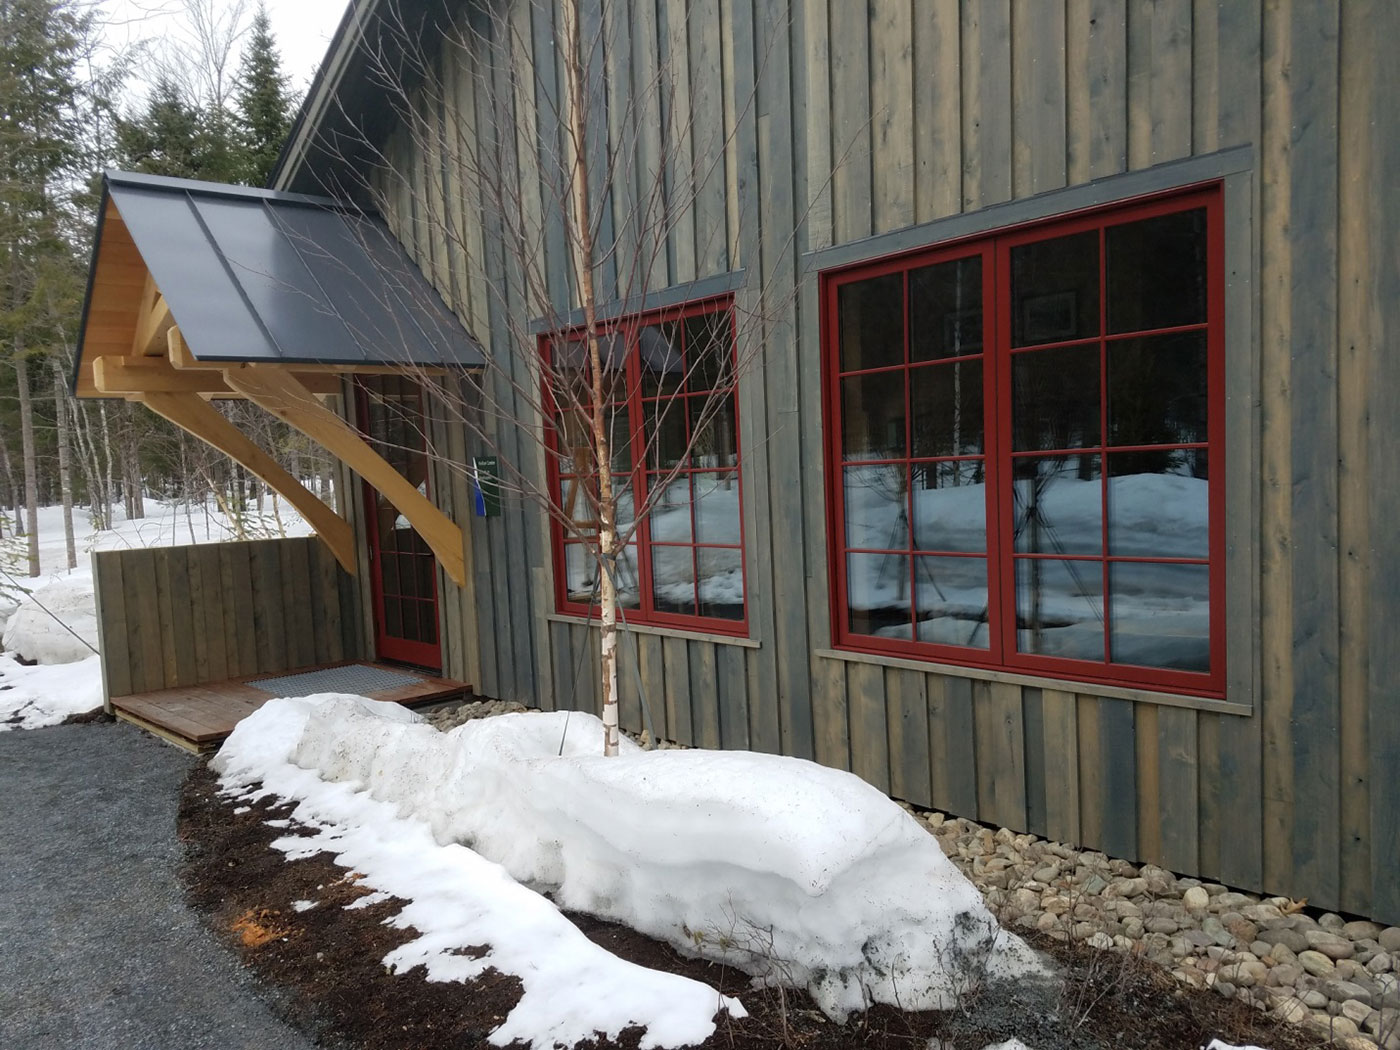 Penobscot River Trails Visitor Center